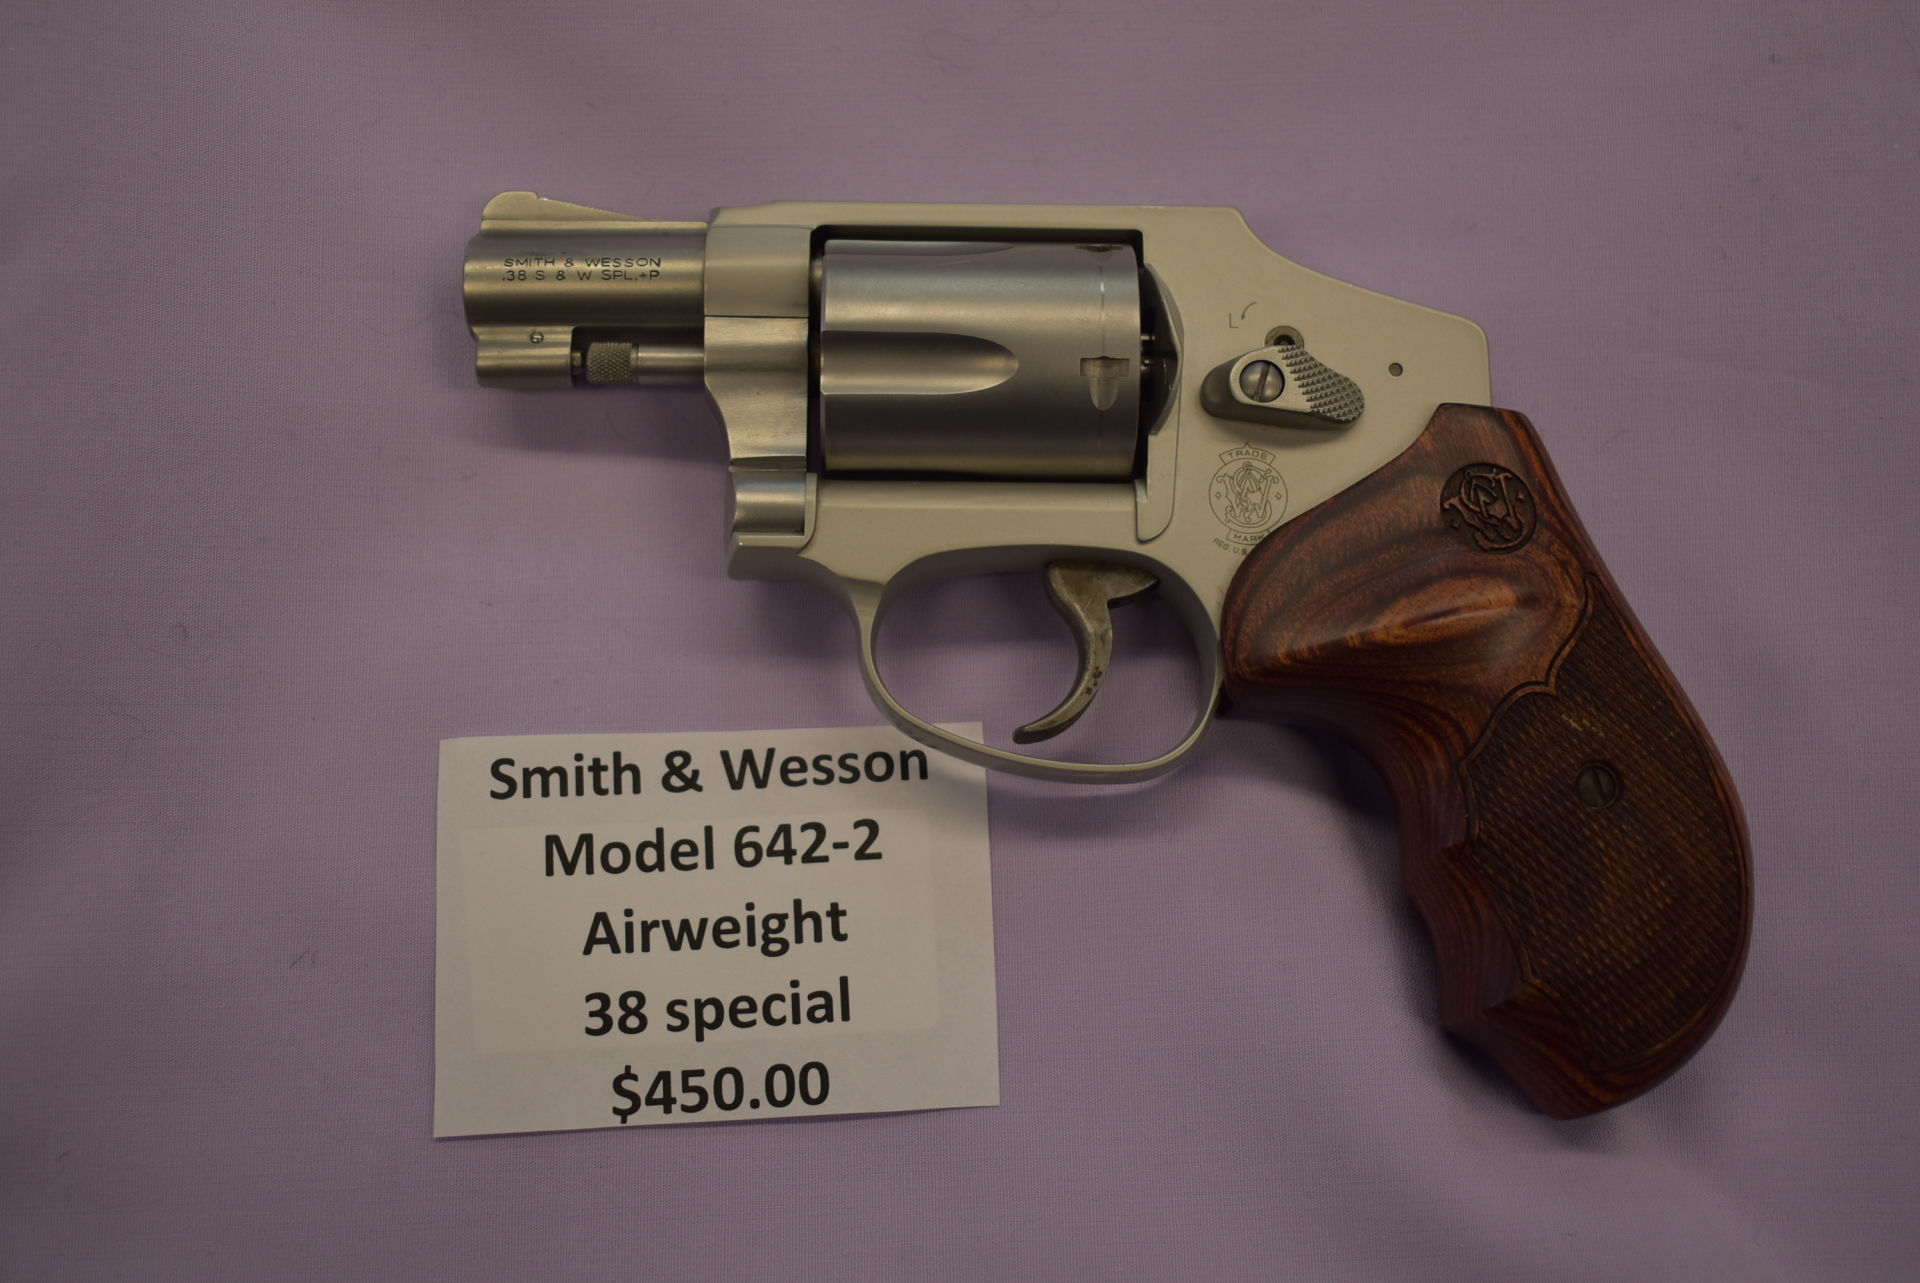 Smith & Wesson 642-2 Airweight